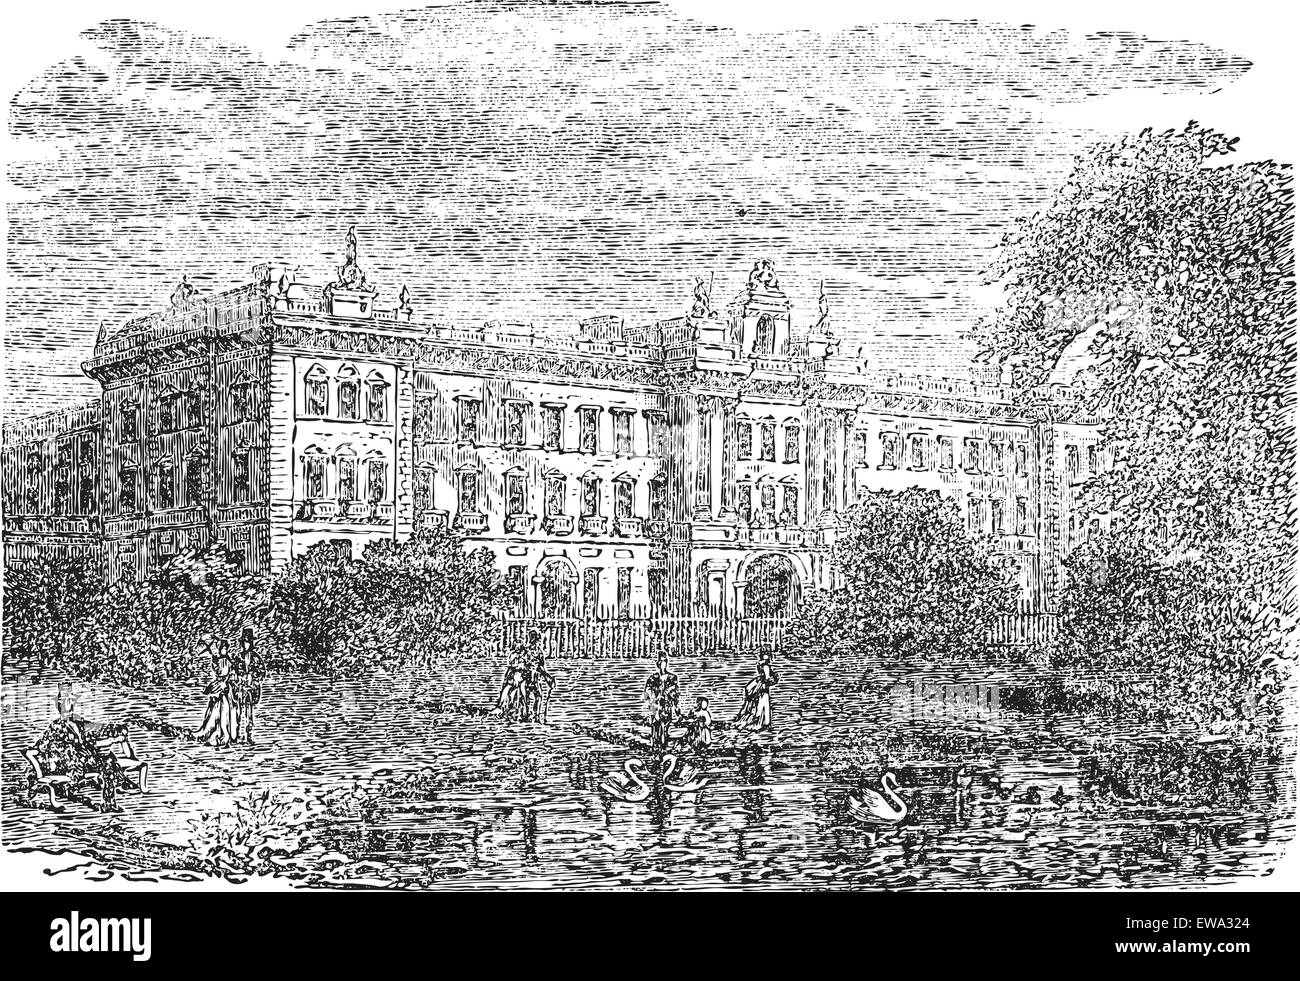 Buckingham Palace or Buckingham House in London, England, during the 1890s, vintage engraving. Old engraved illustration - Stock Vector